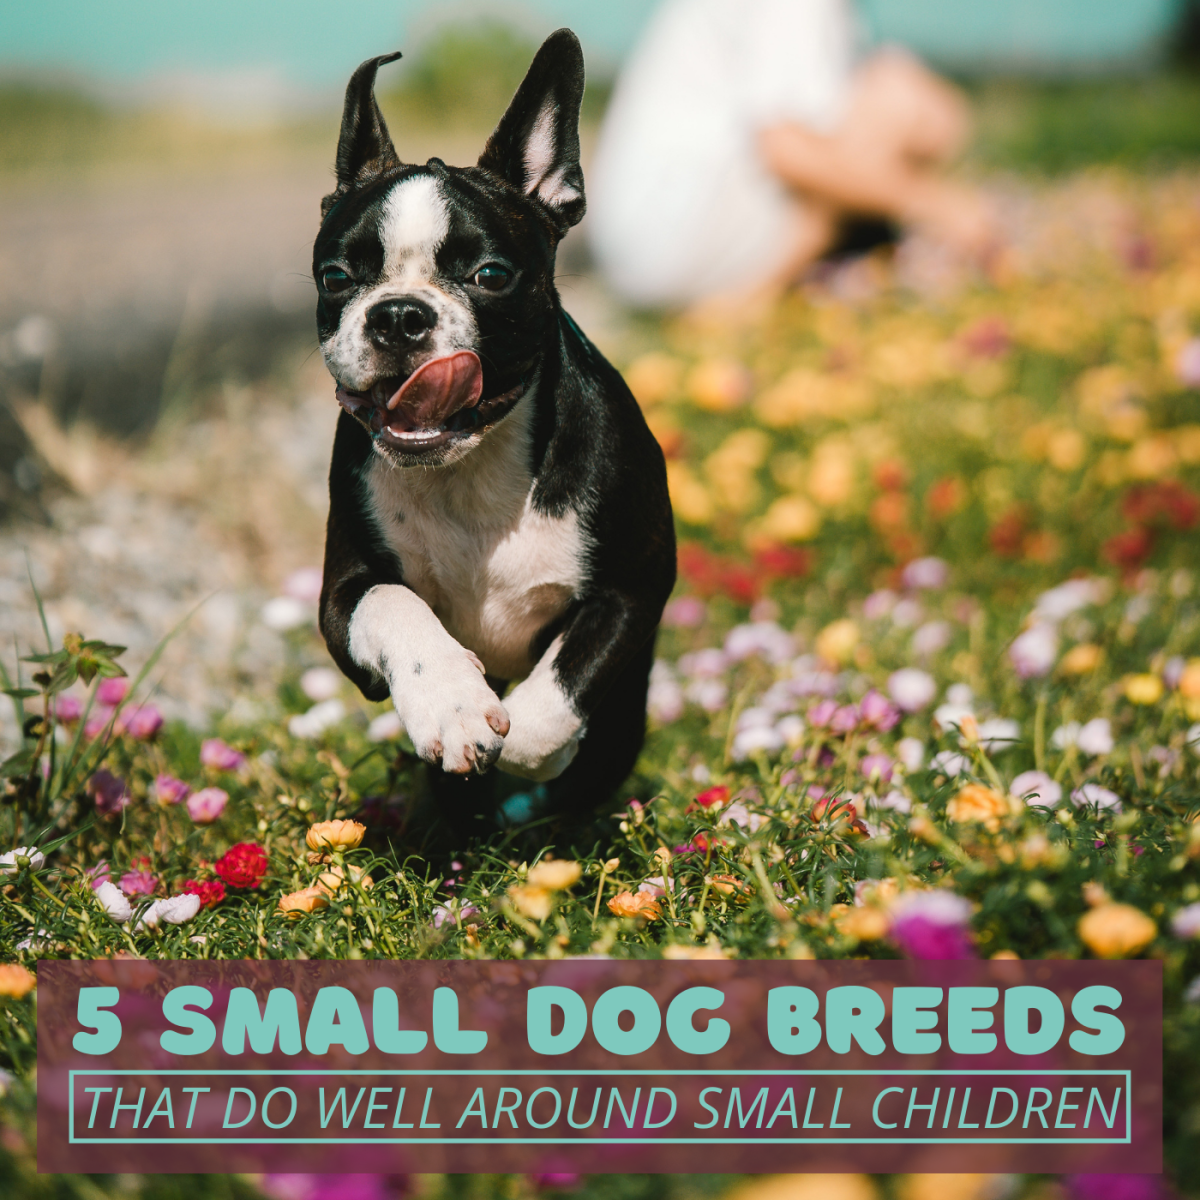 The Boston Terrier is one of the top five small dog breeds I would recommend to families with toddlers or young children.